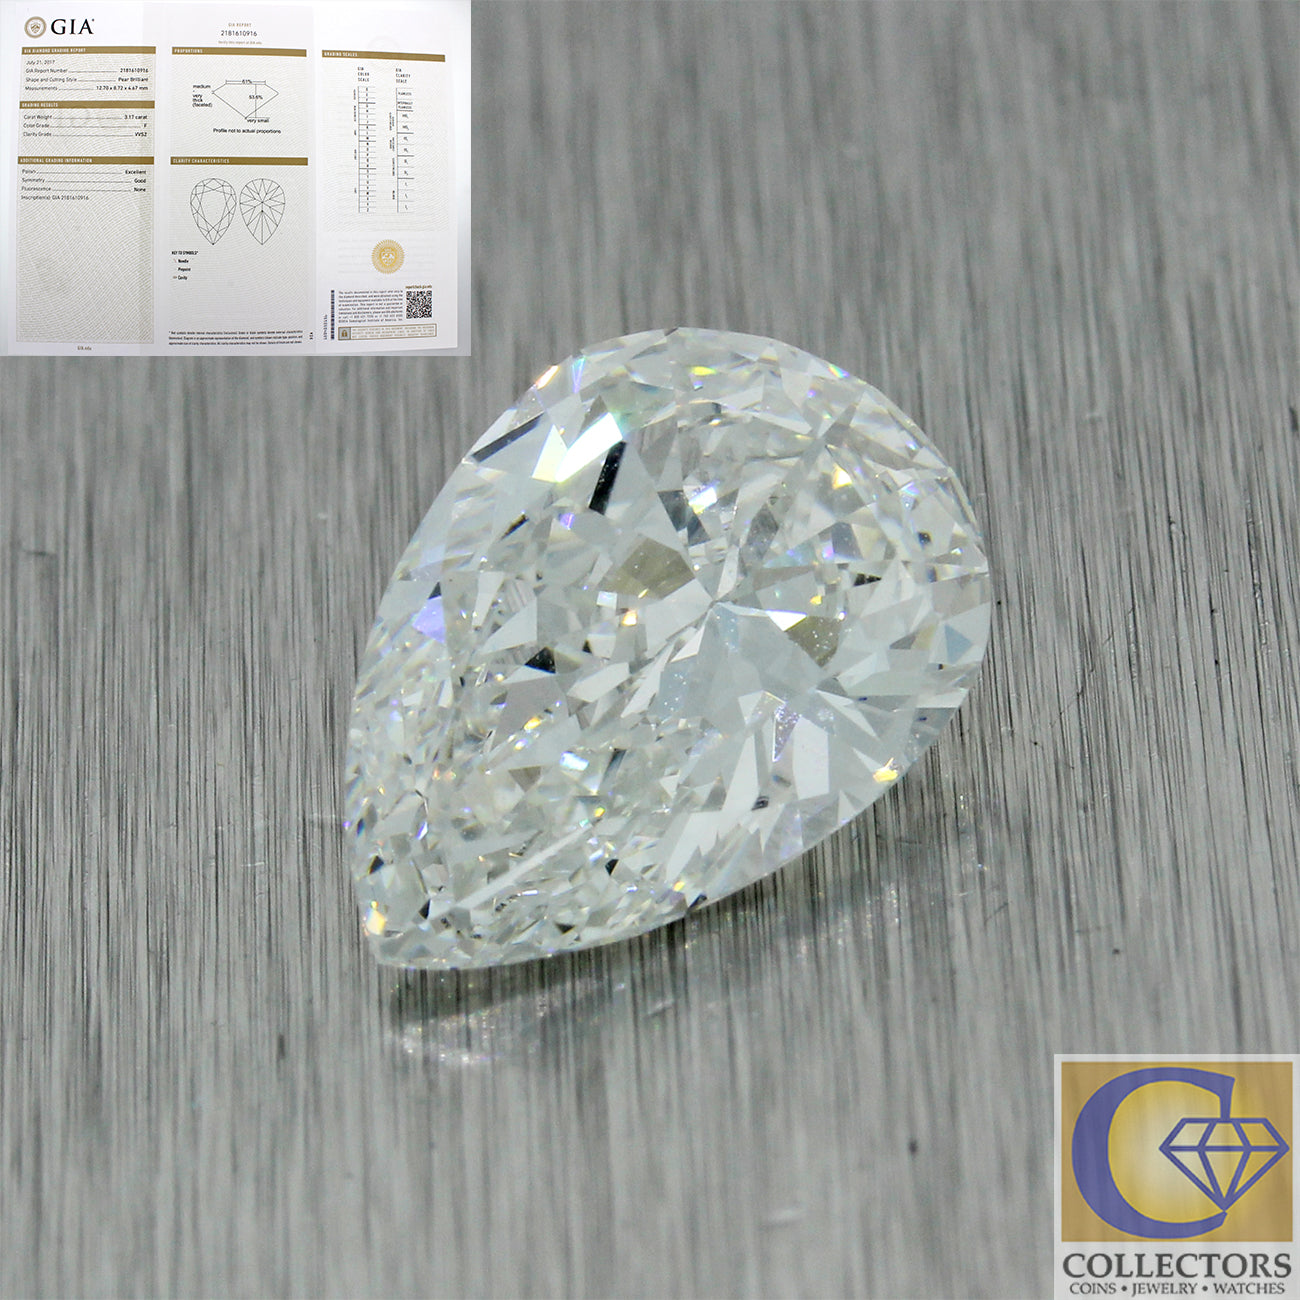 3.17ct GIA Certified Pear Shape Brilliant Cut F VVS2 Natural Modern Loose Diamond